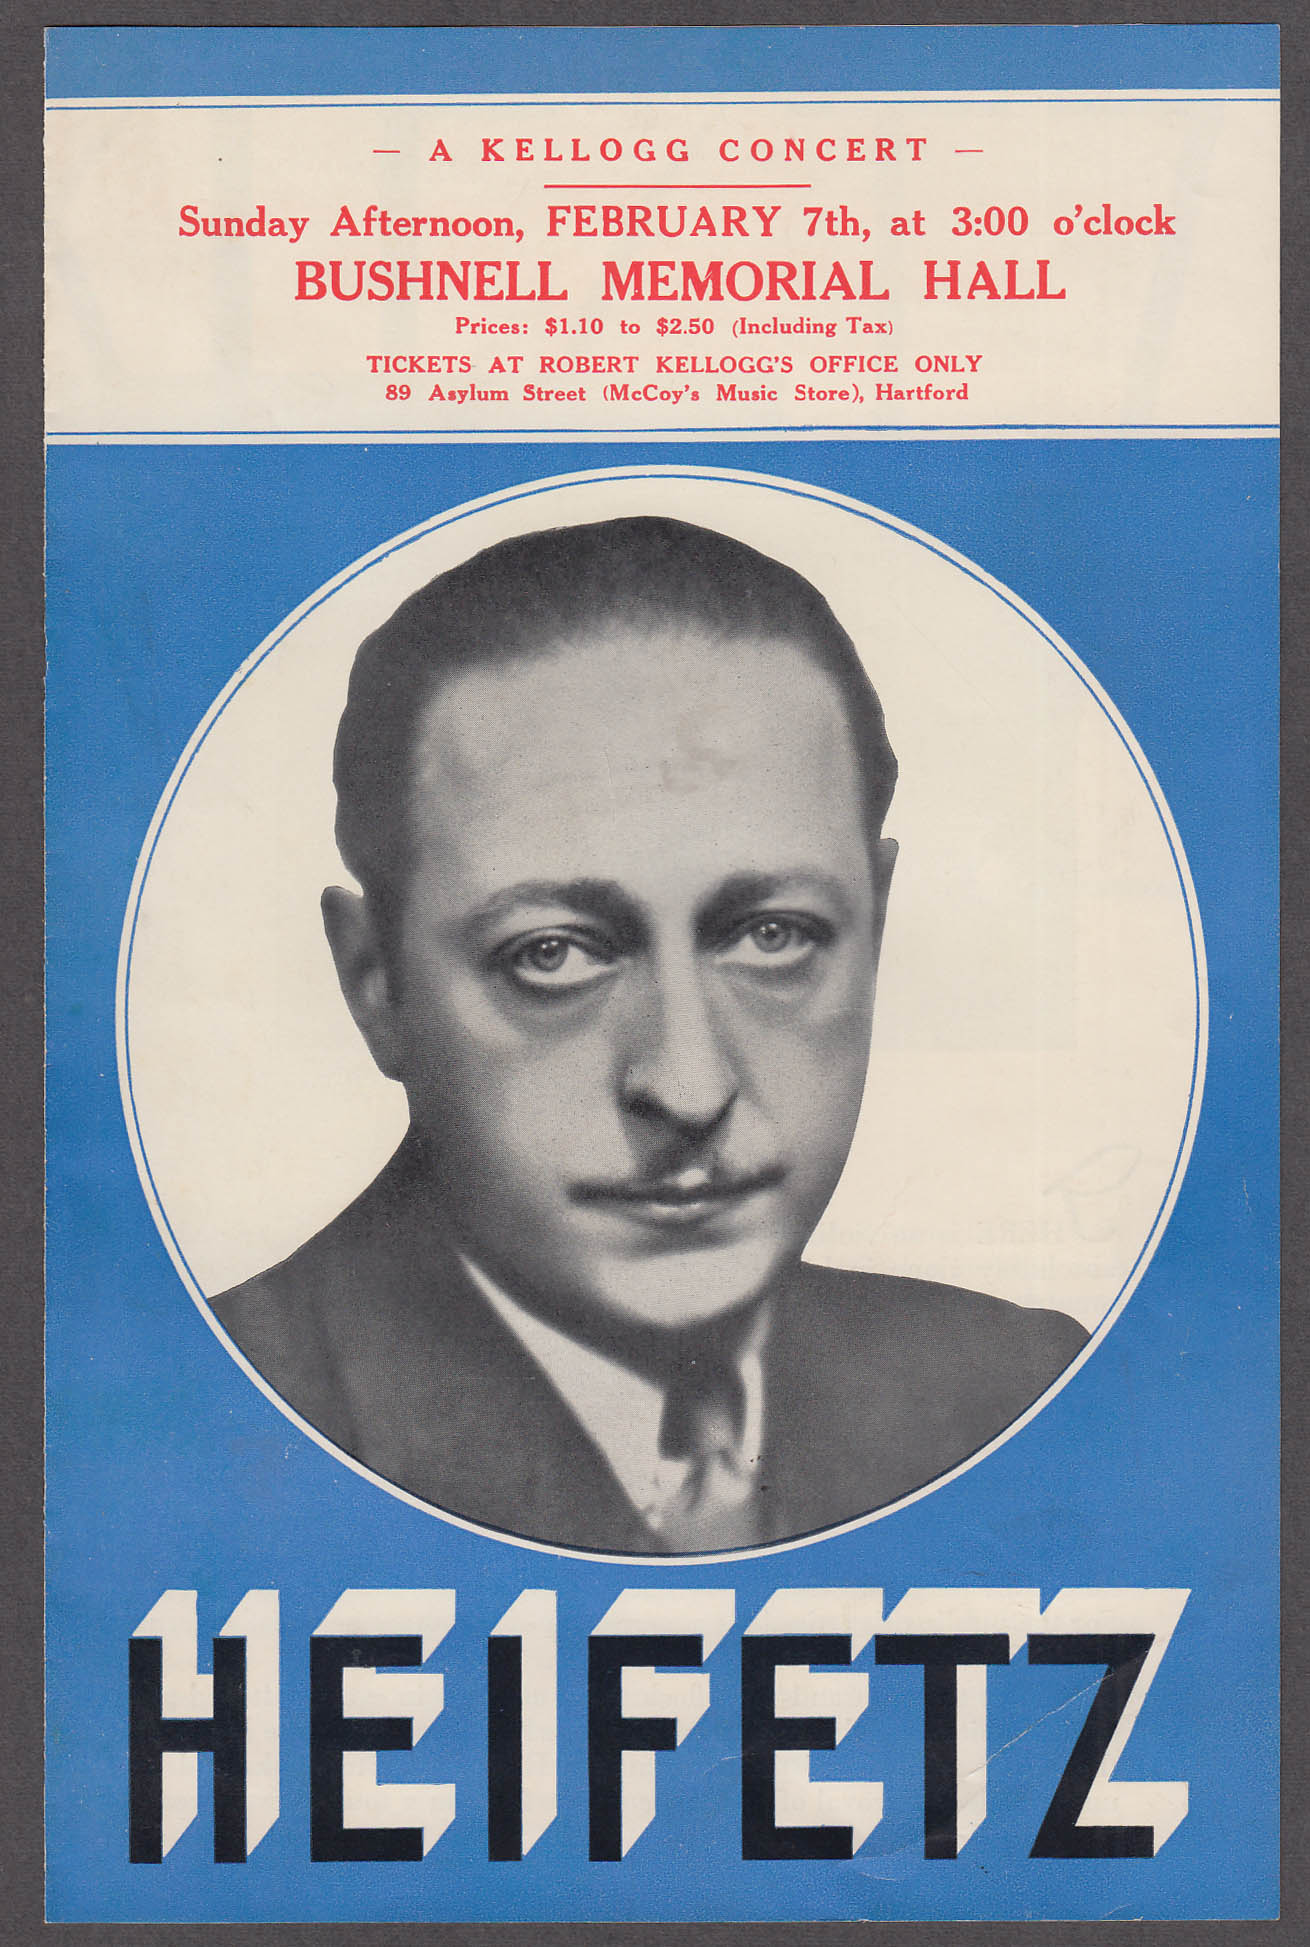 Jascha Heifetz promo flyer Bushnell Memorial Hartford CT 1937